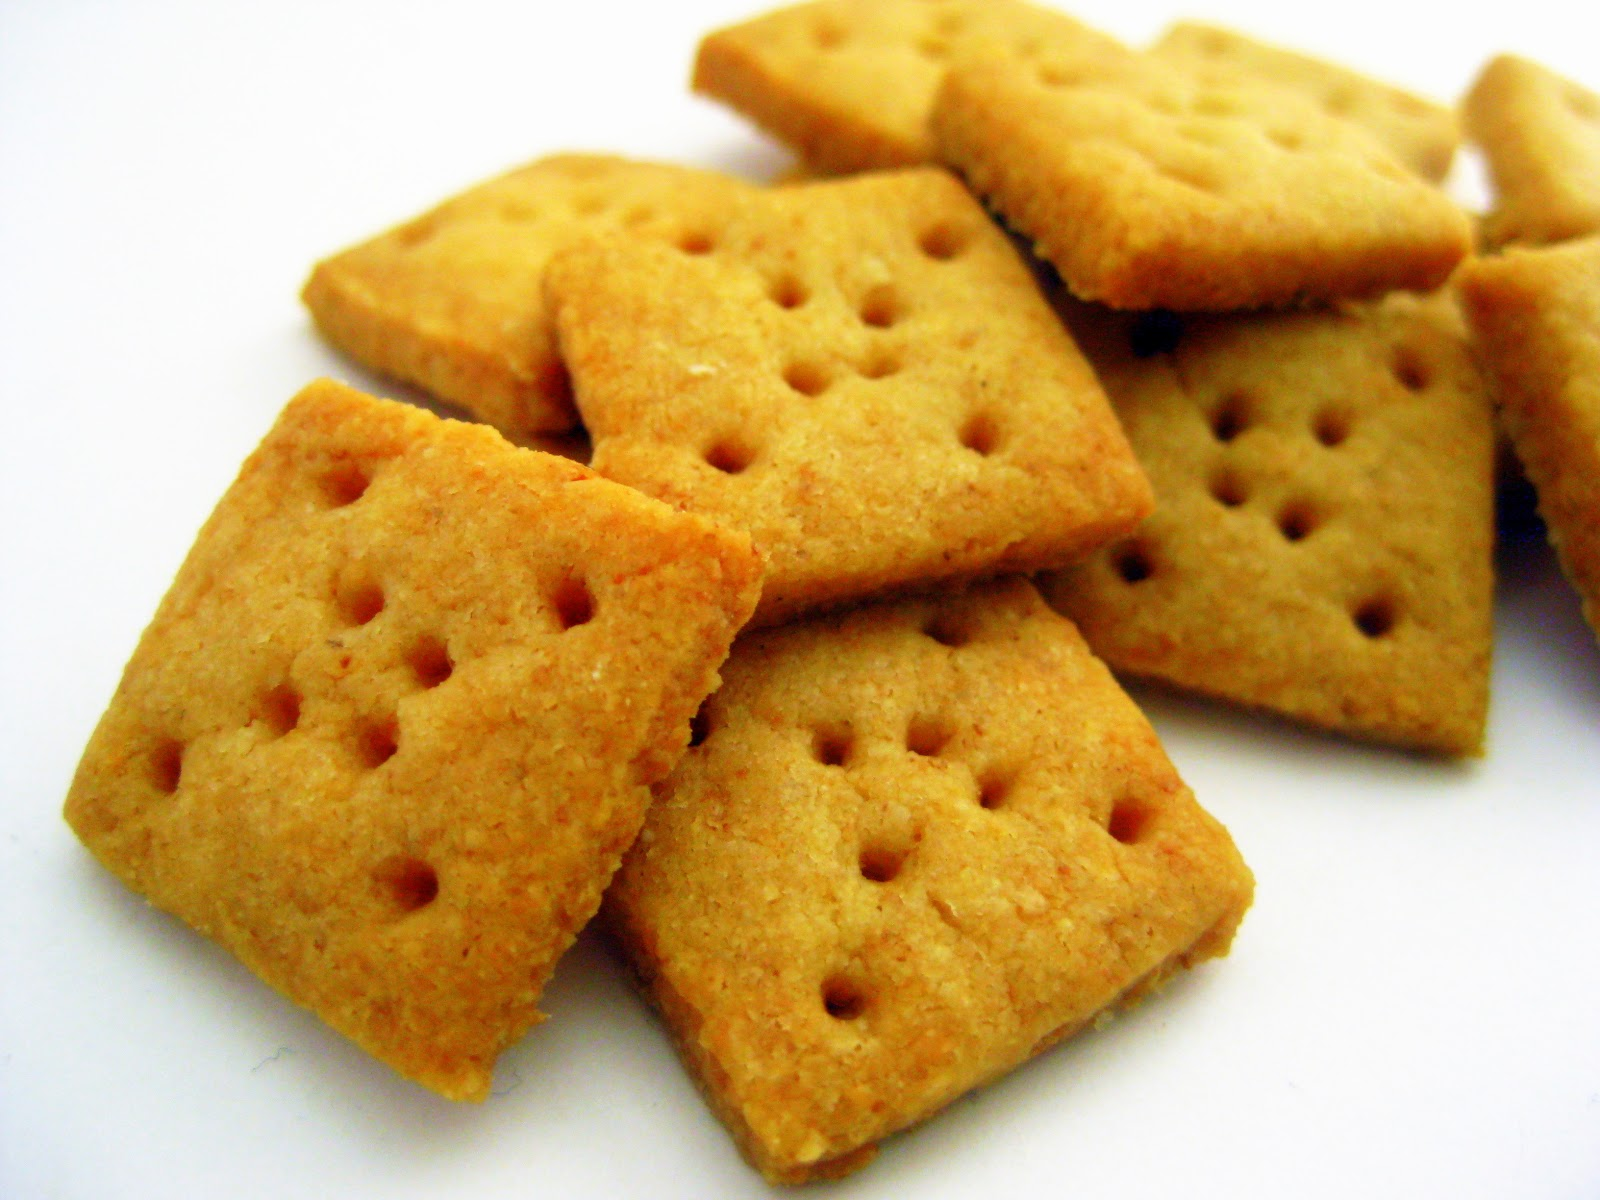 The Larissa Monologues: Whole Wheat Cheese Crackers